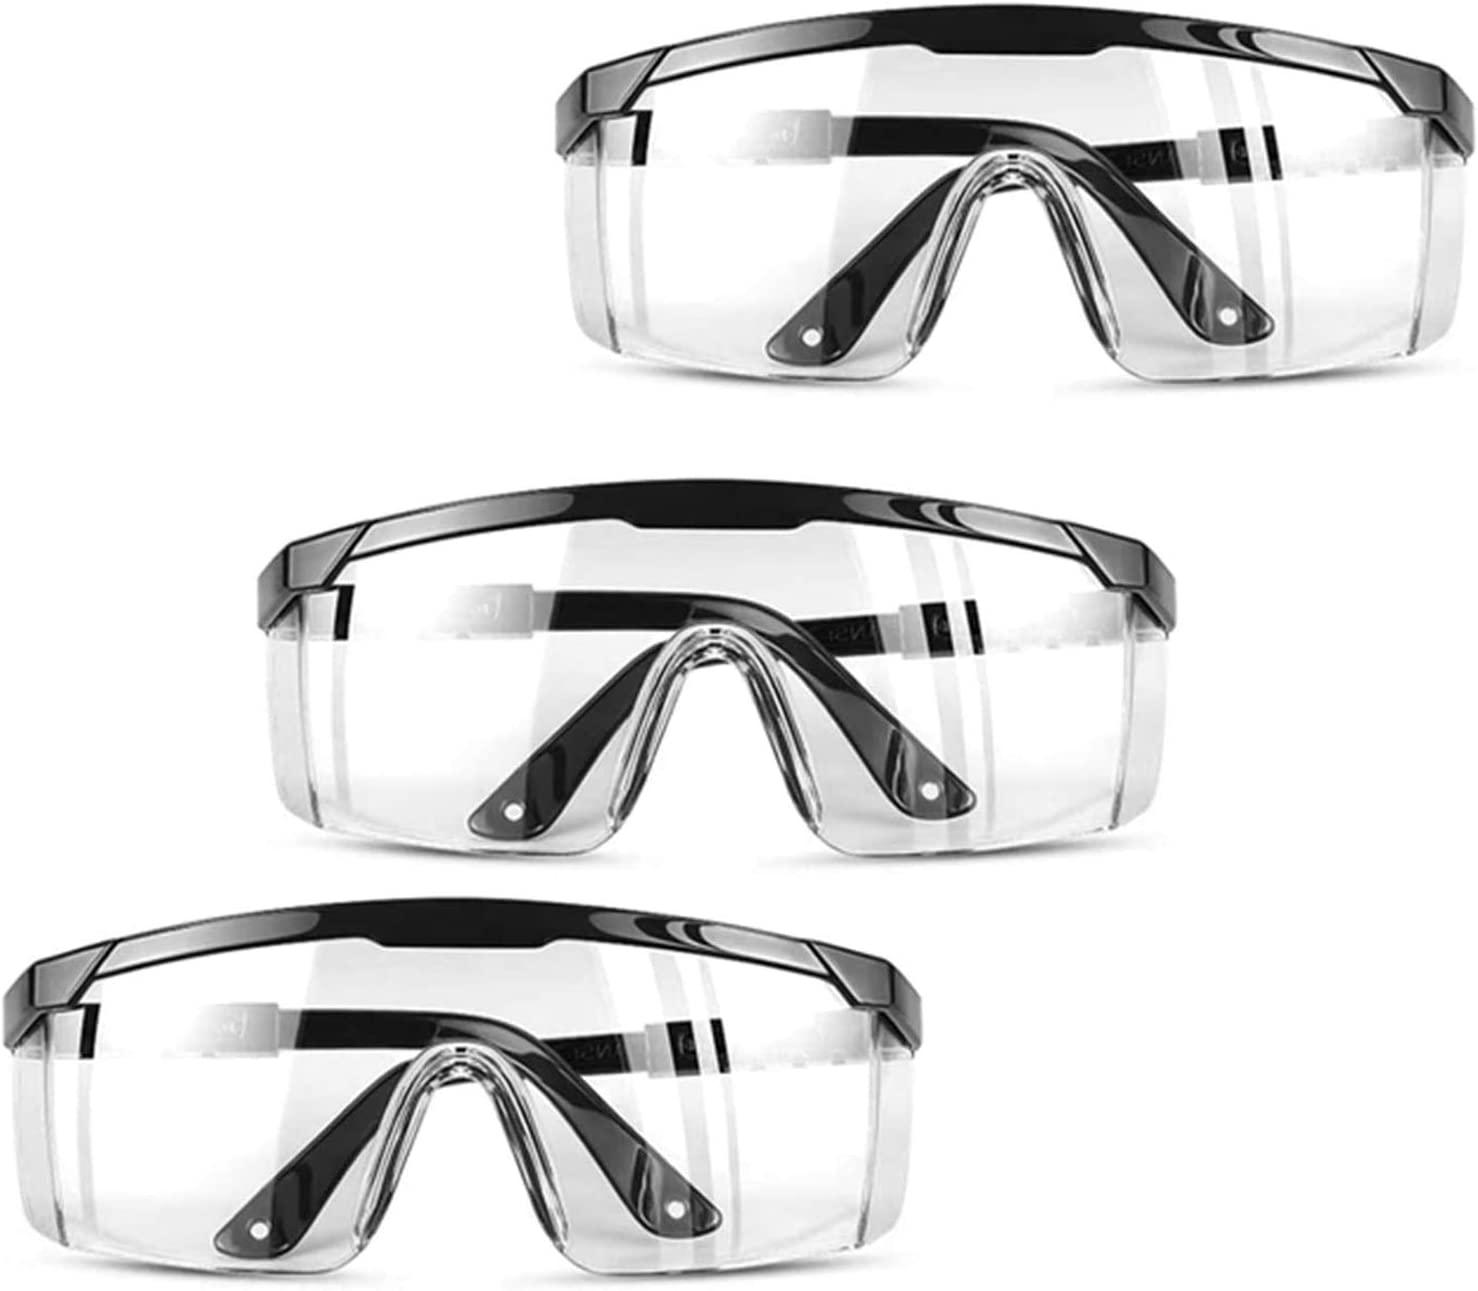 1-50 PCS Safety Goggles Eye Protection Anti Fog Clear Vent Protective Glasses